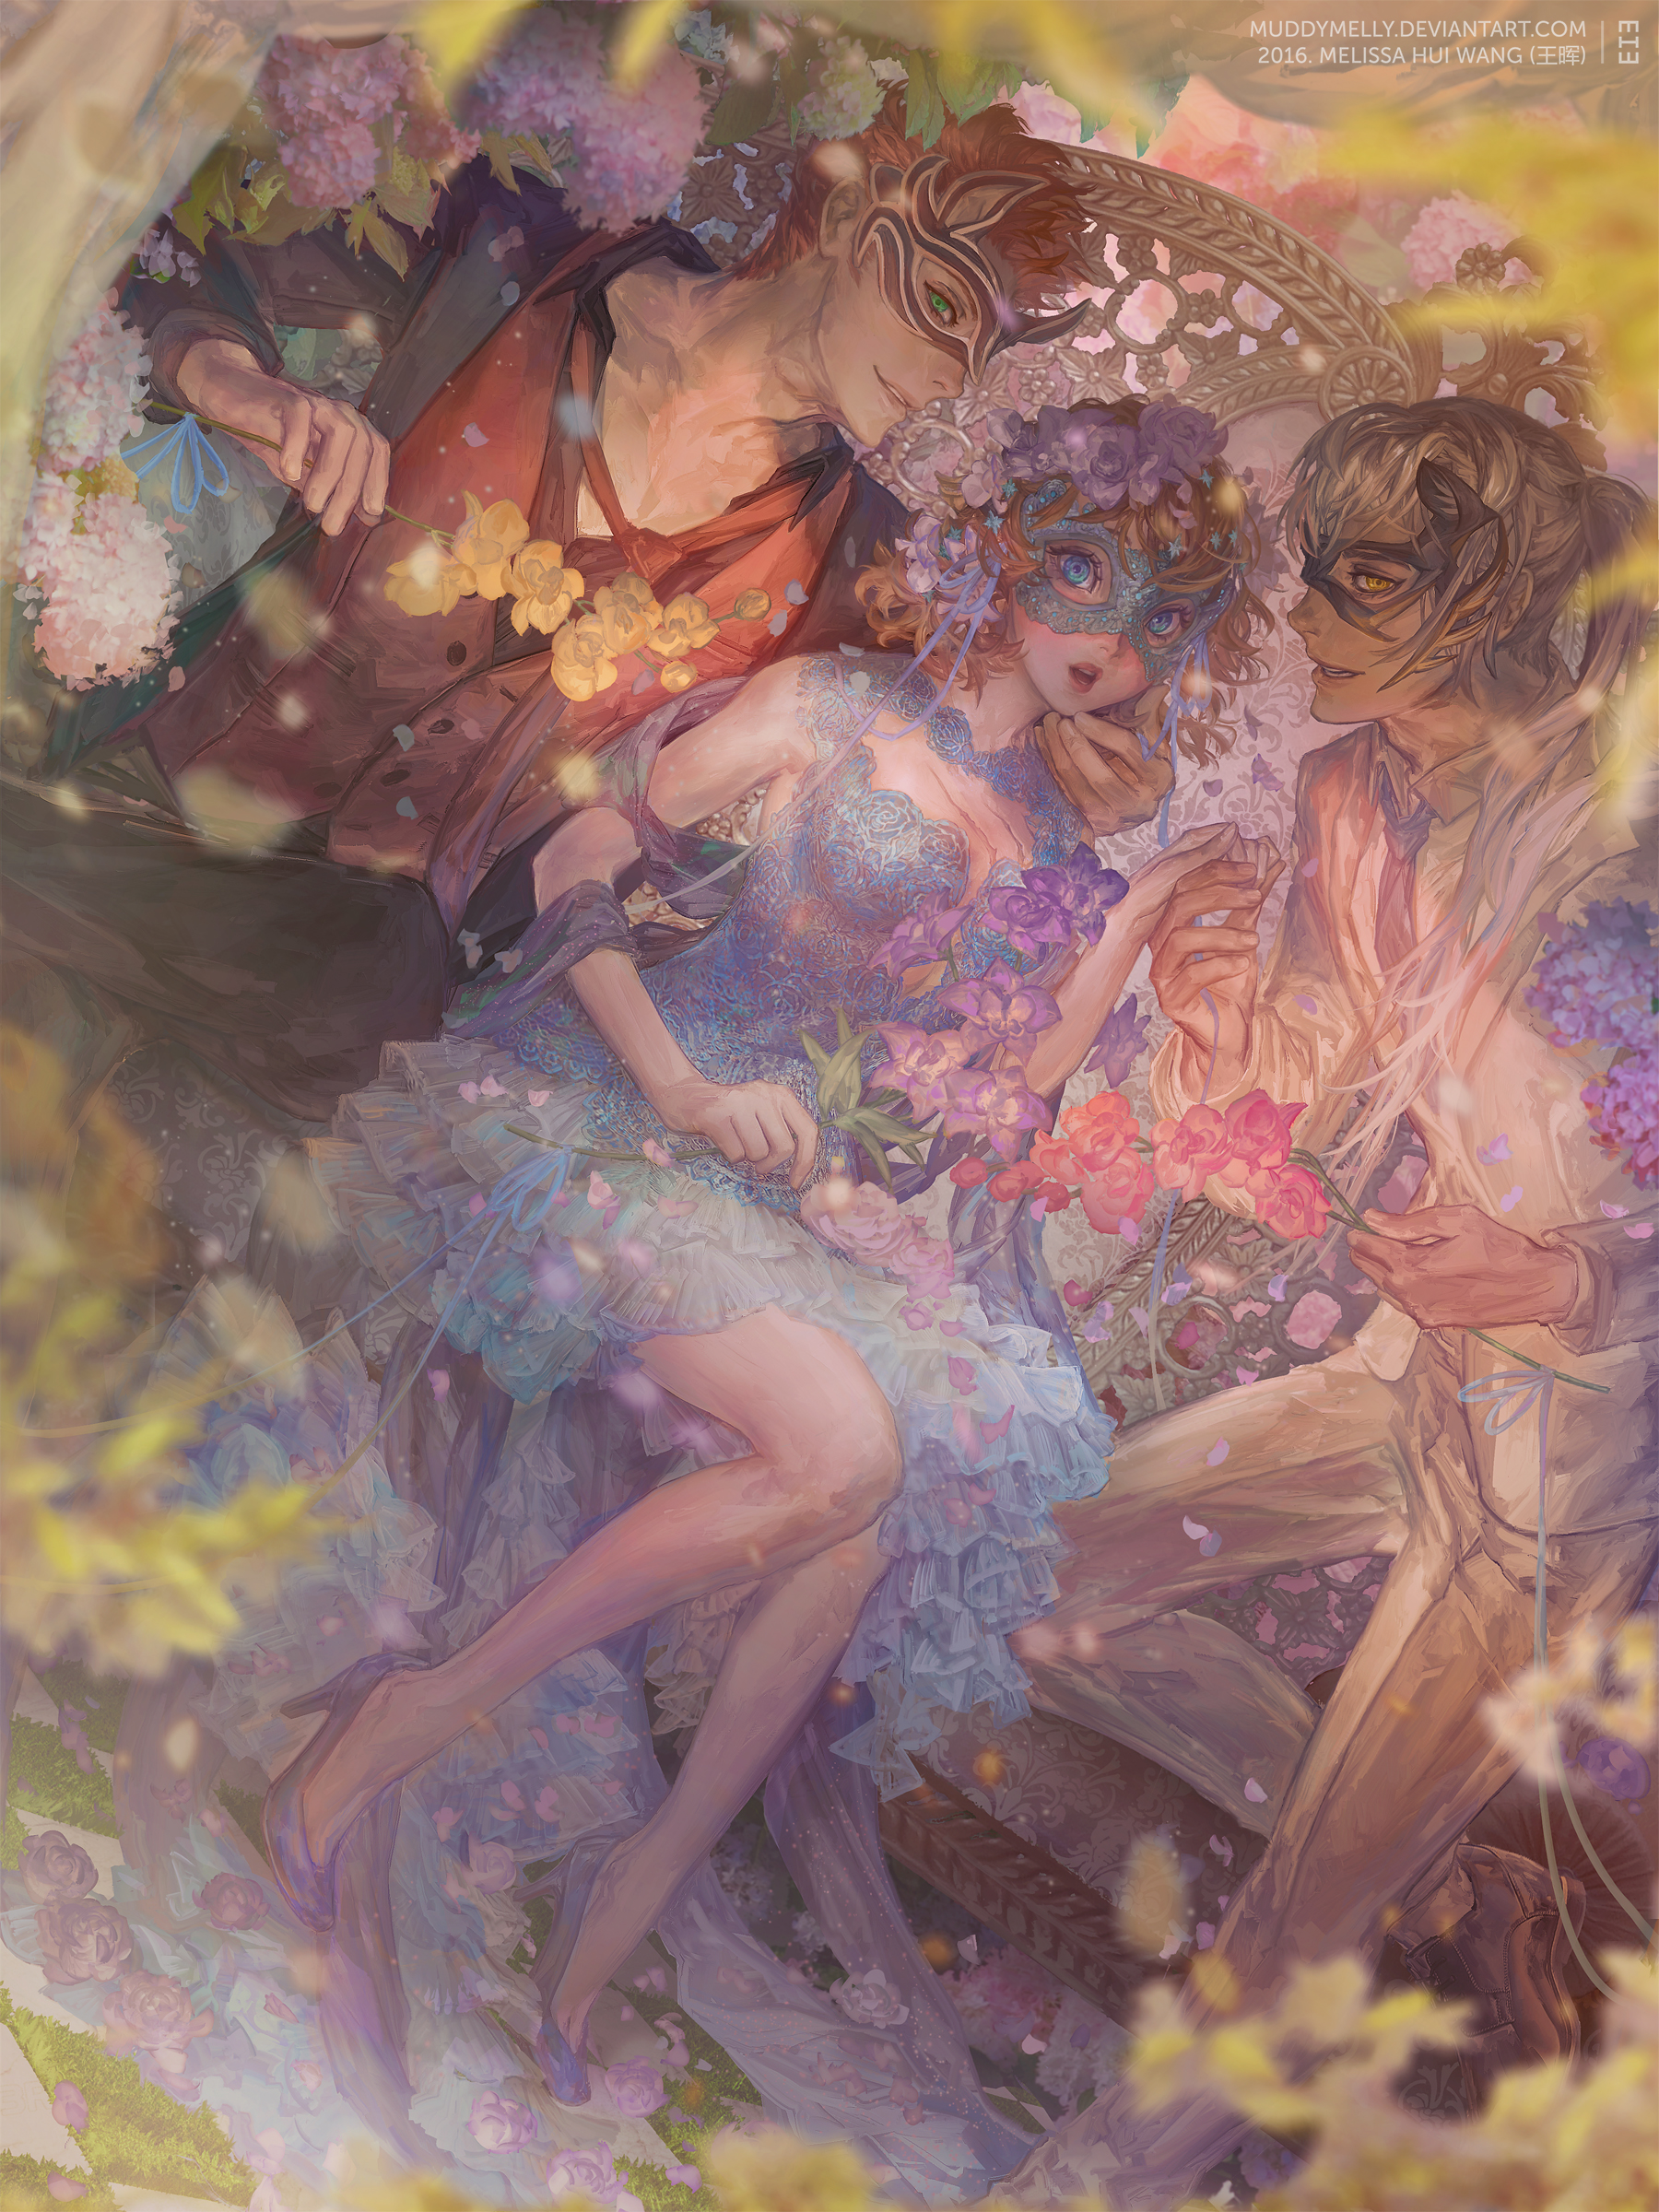 http://orig02.deviantart.net/057d/f/2016/102/e/4/_commission____trio_on_a_garden_bench_by_muddymelly-d9yq09f.jpg